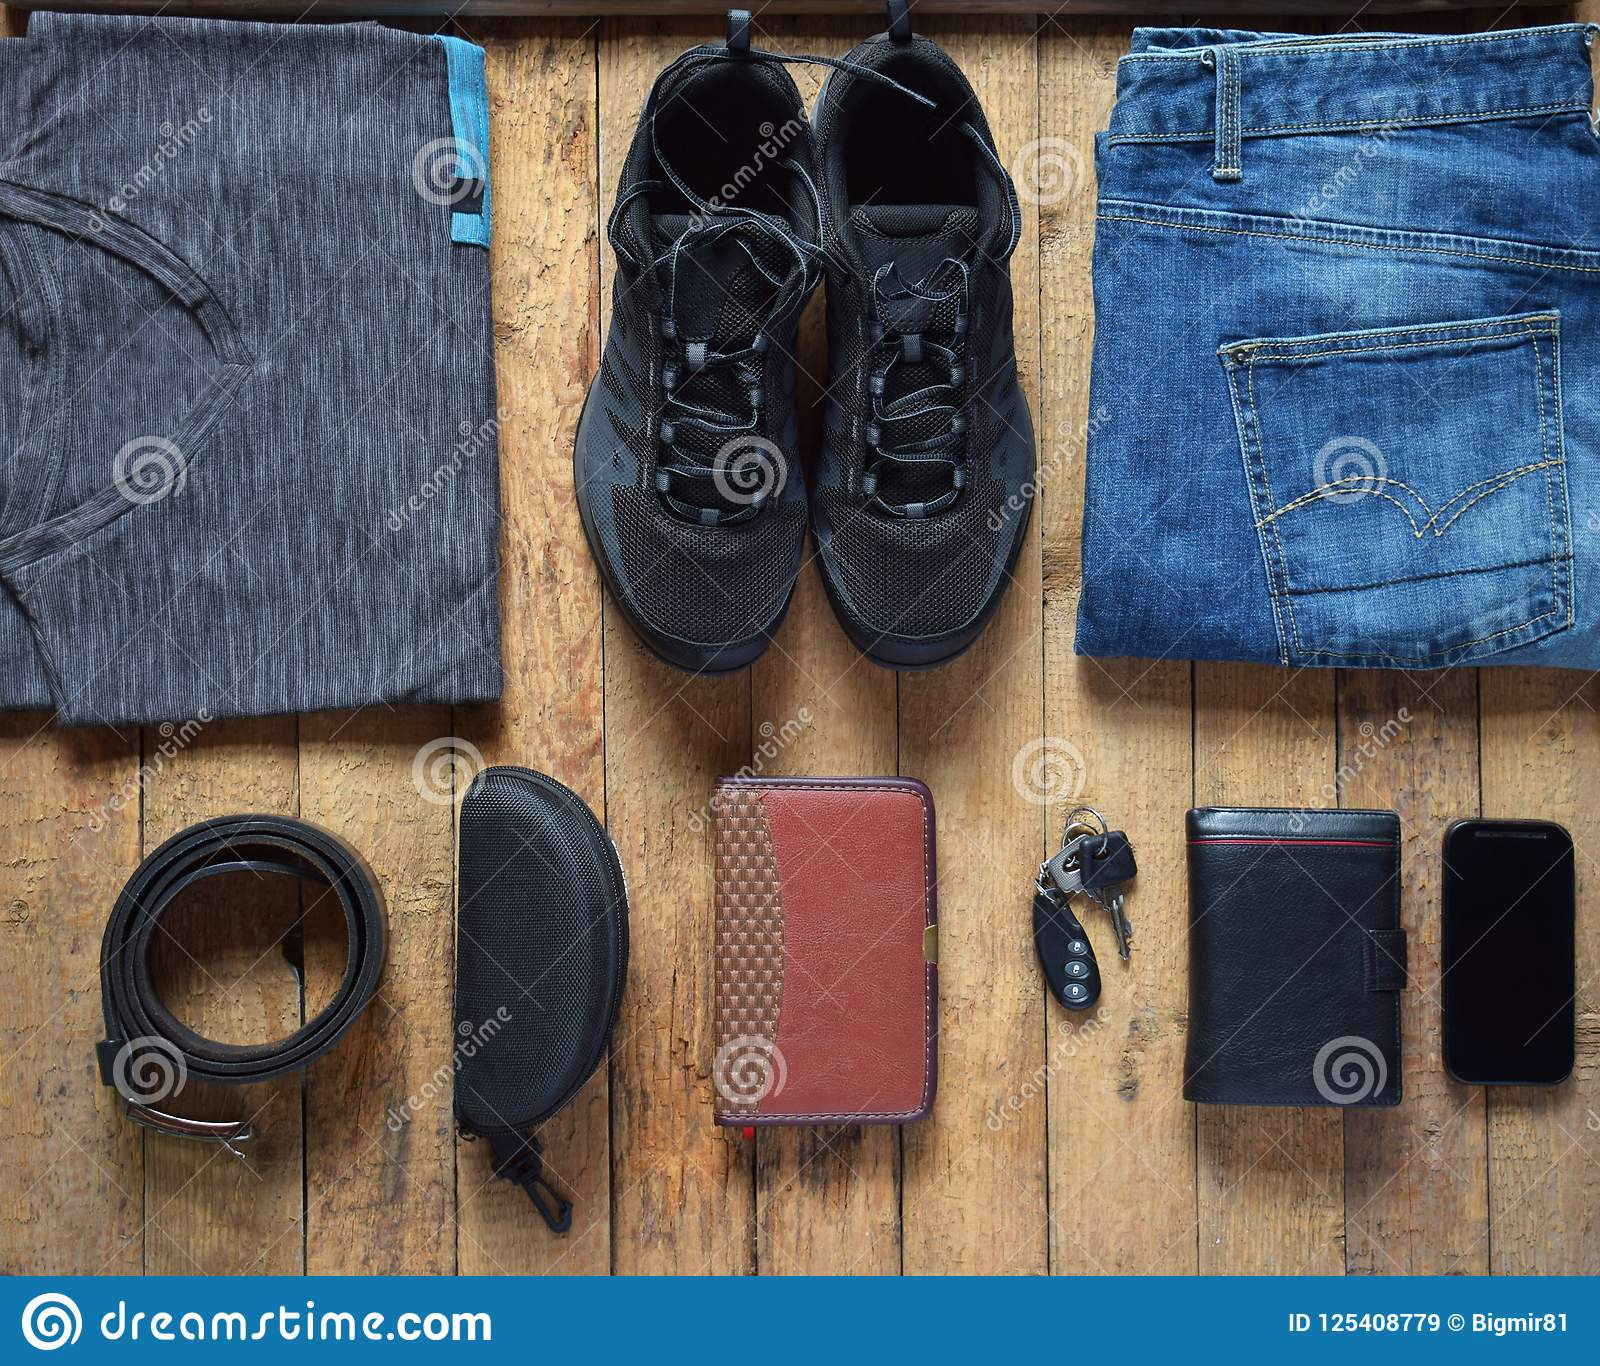 Casual Shoes, Men's Shoes, Clothing, Shoes & Accessories